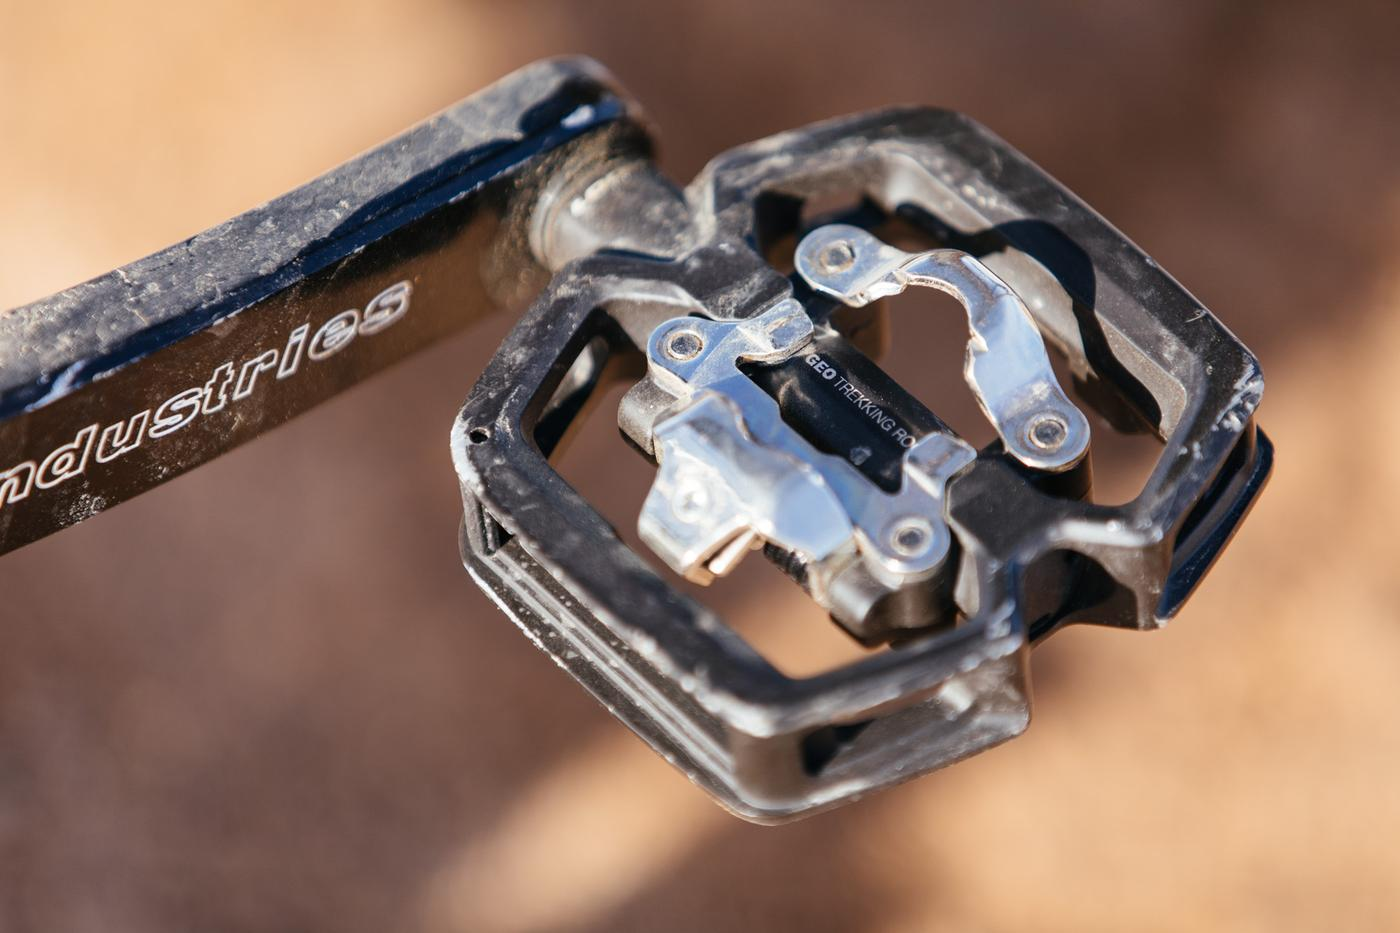 LOOK's Geo Trekking Roc Vision Pedals are Gimmicky but Worth their Retail Price